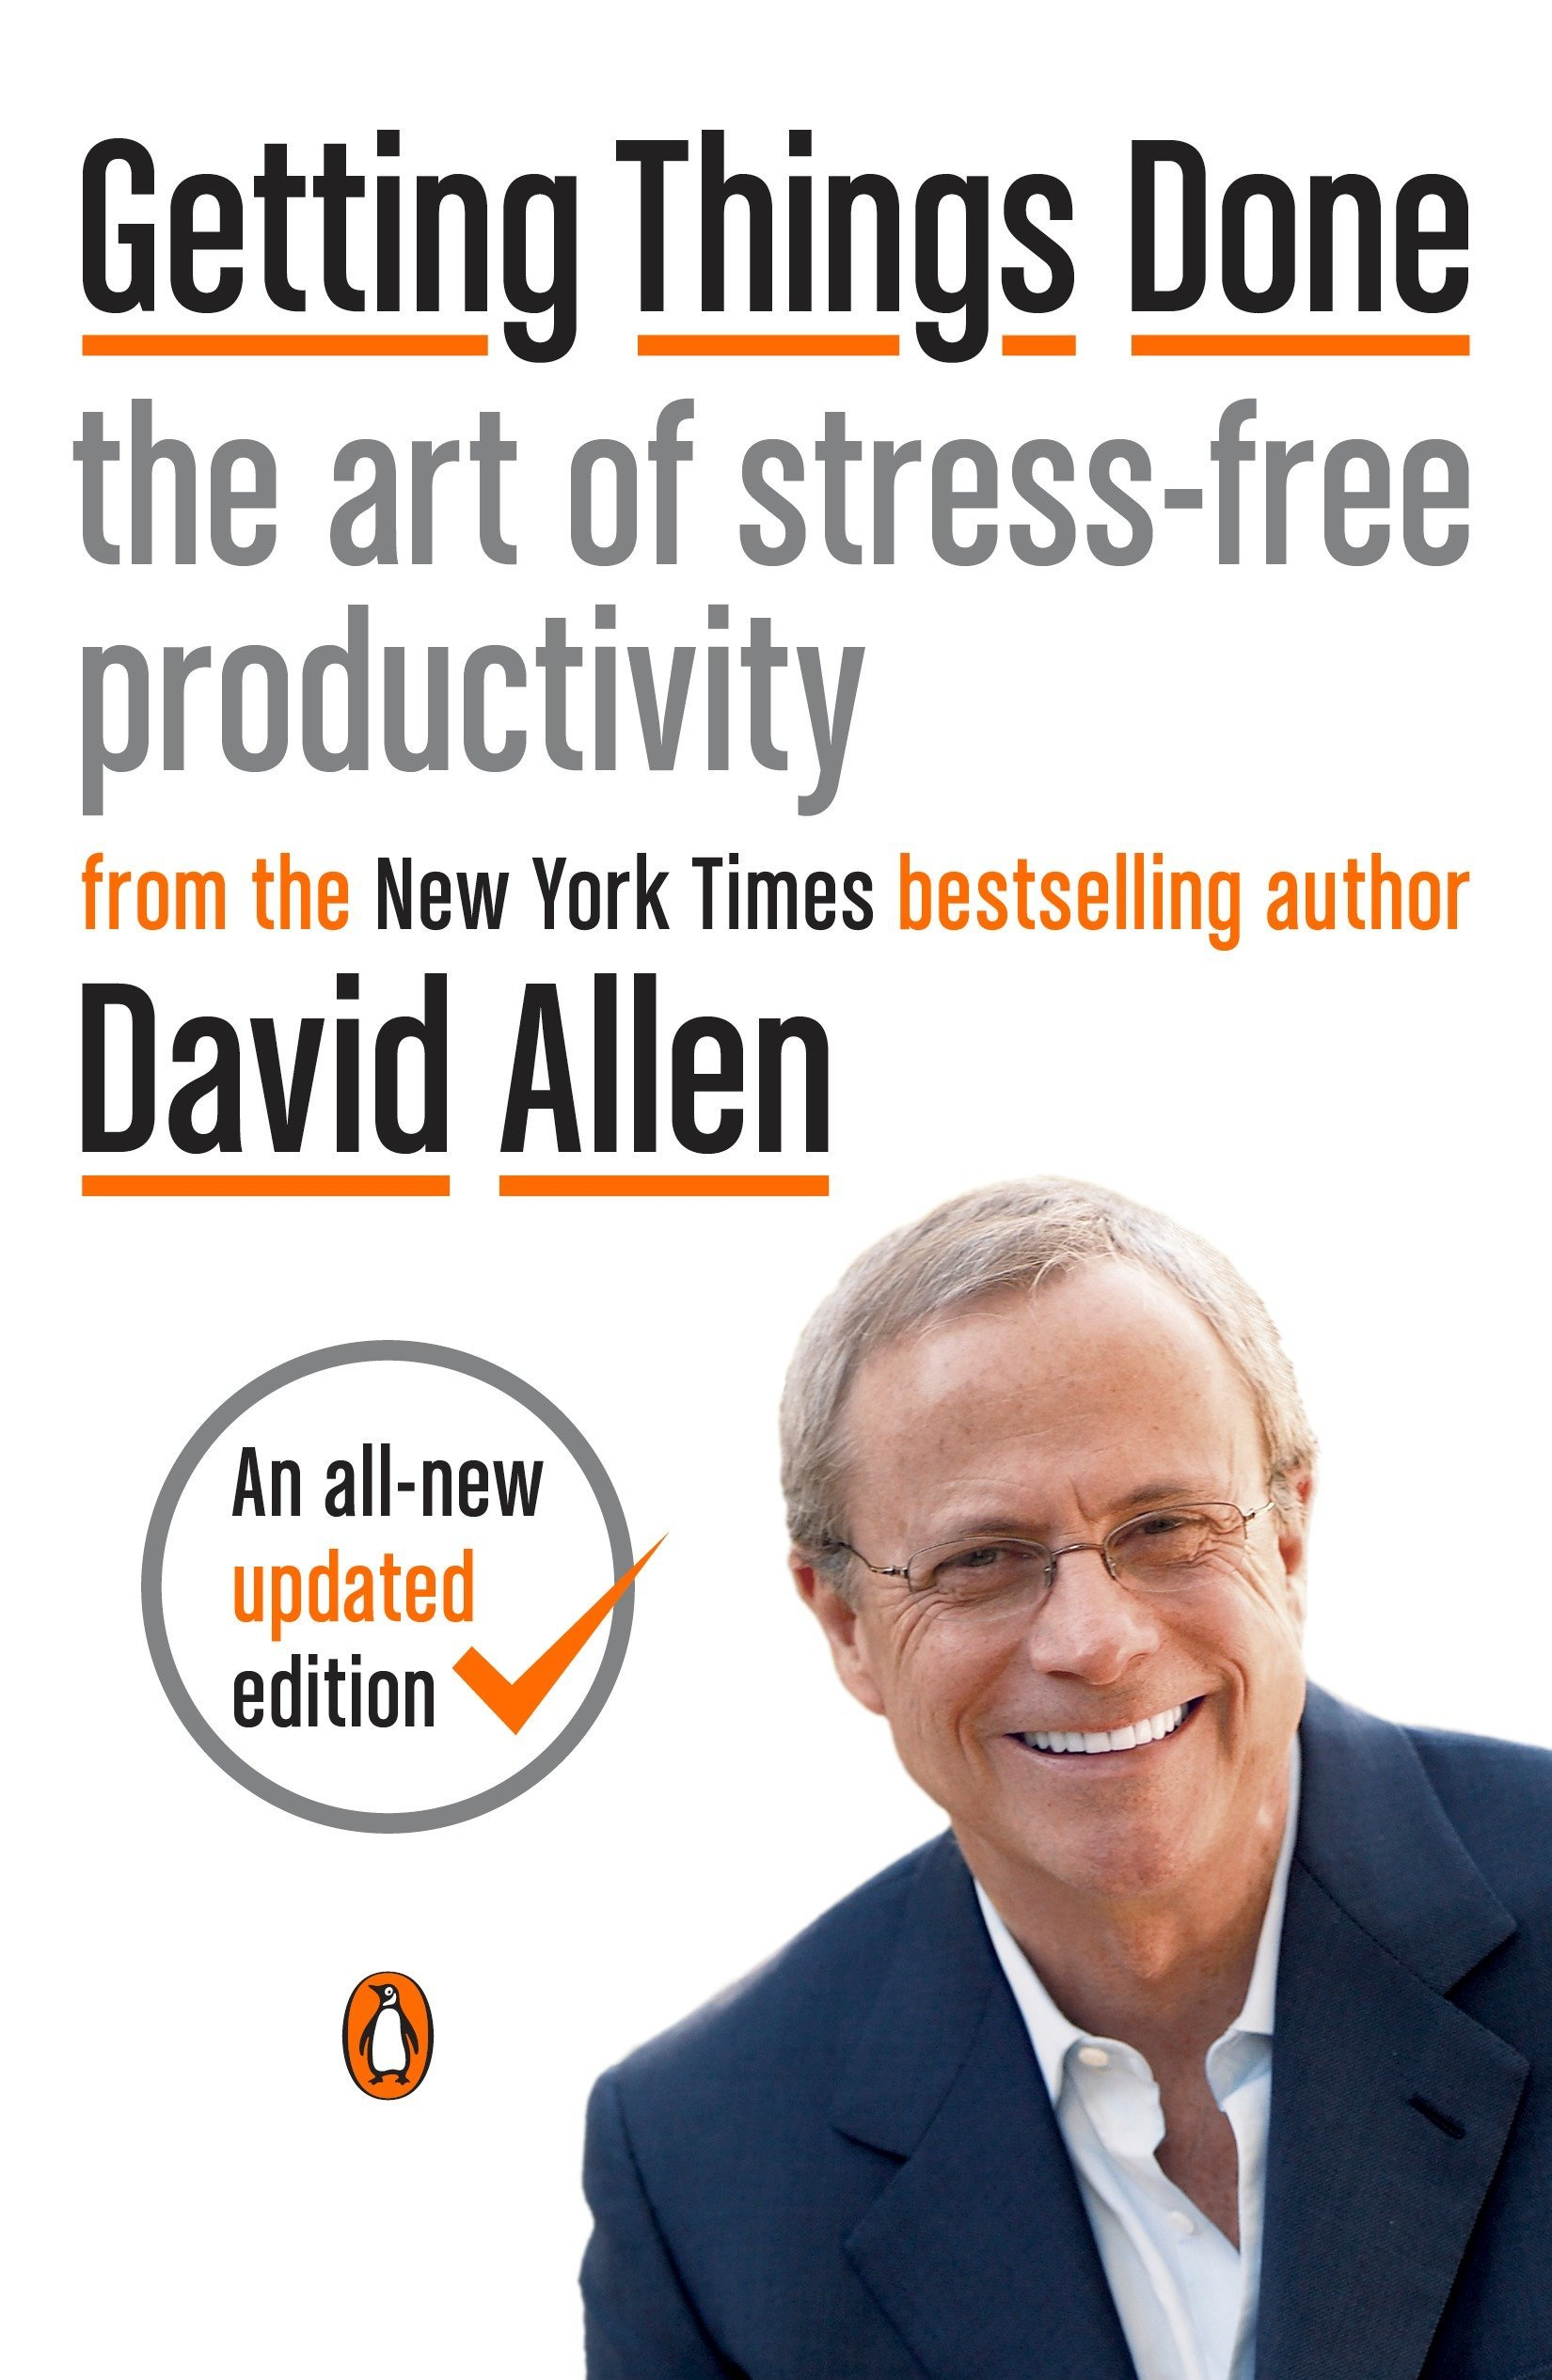 Getting Things Done: The Art of Stress-Free Productivity David Allen [Bonus]